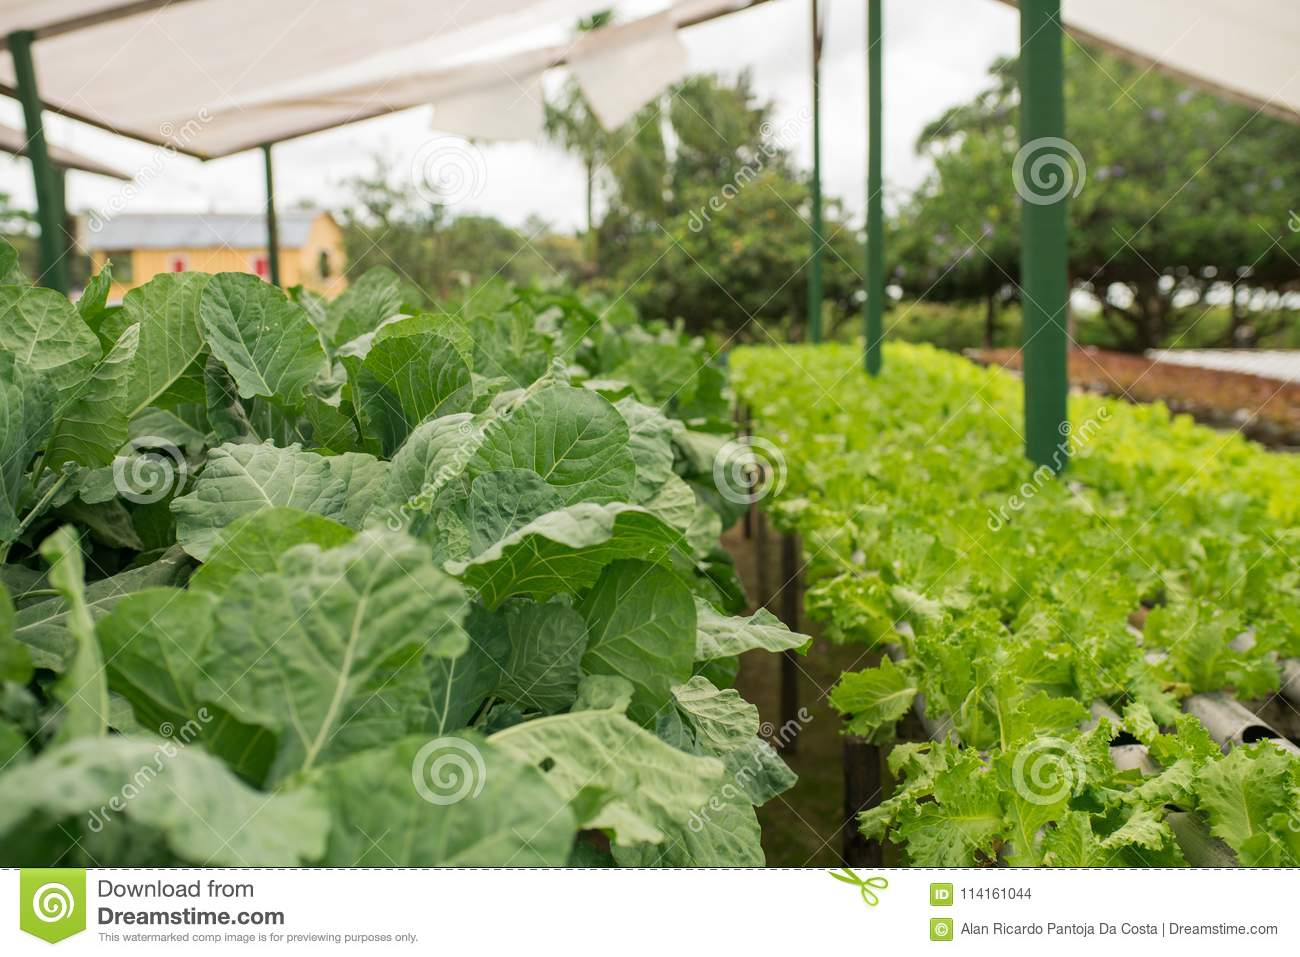 Planting Various Organic Vegetables In The Greenhouse